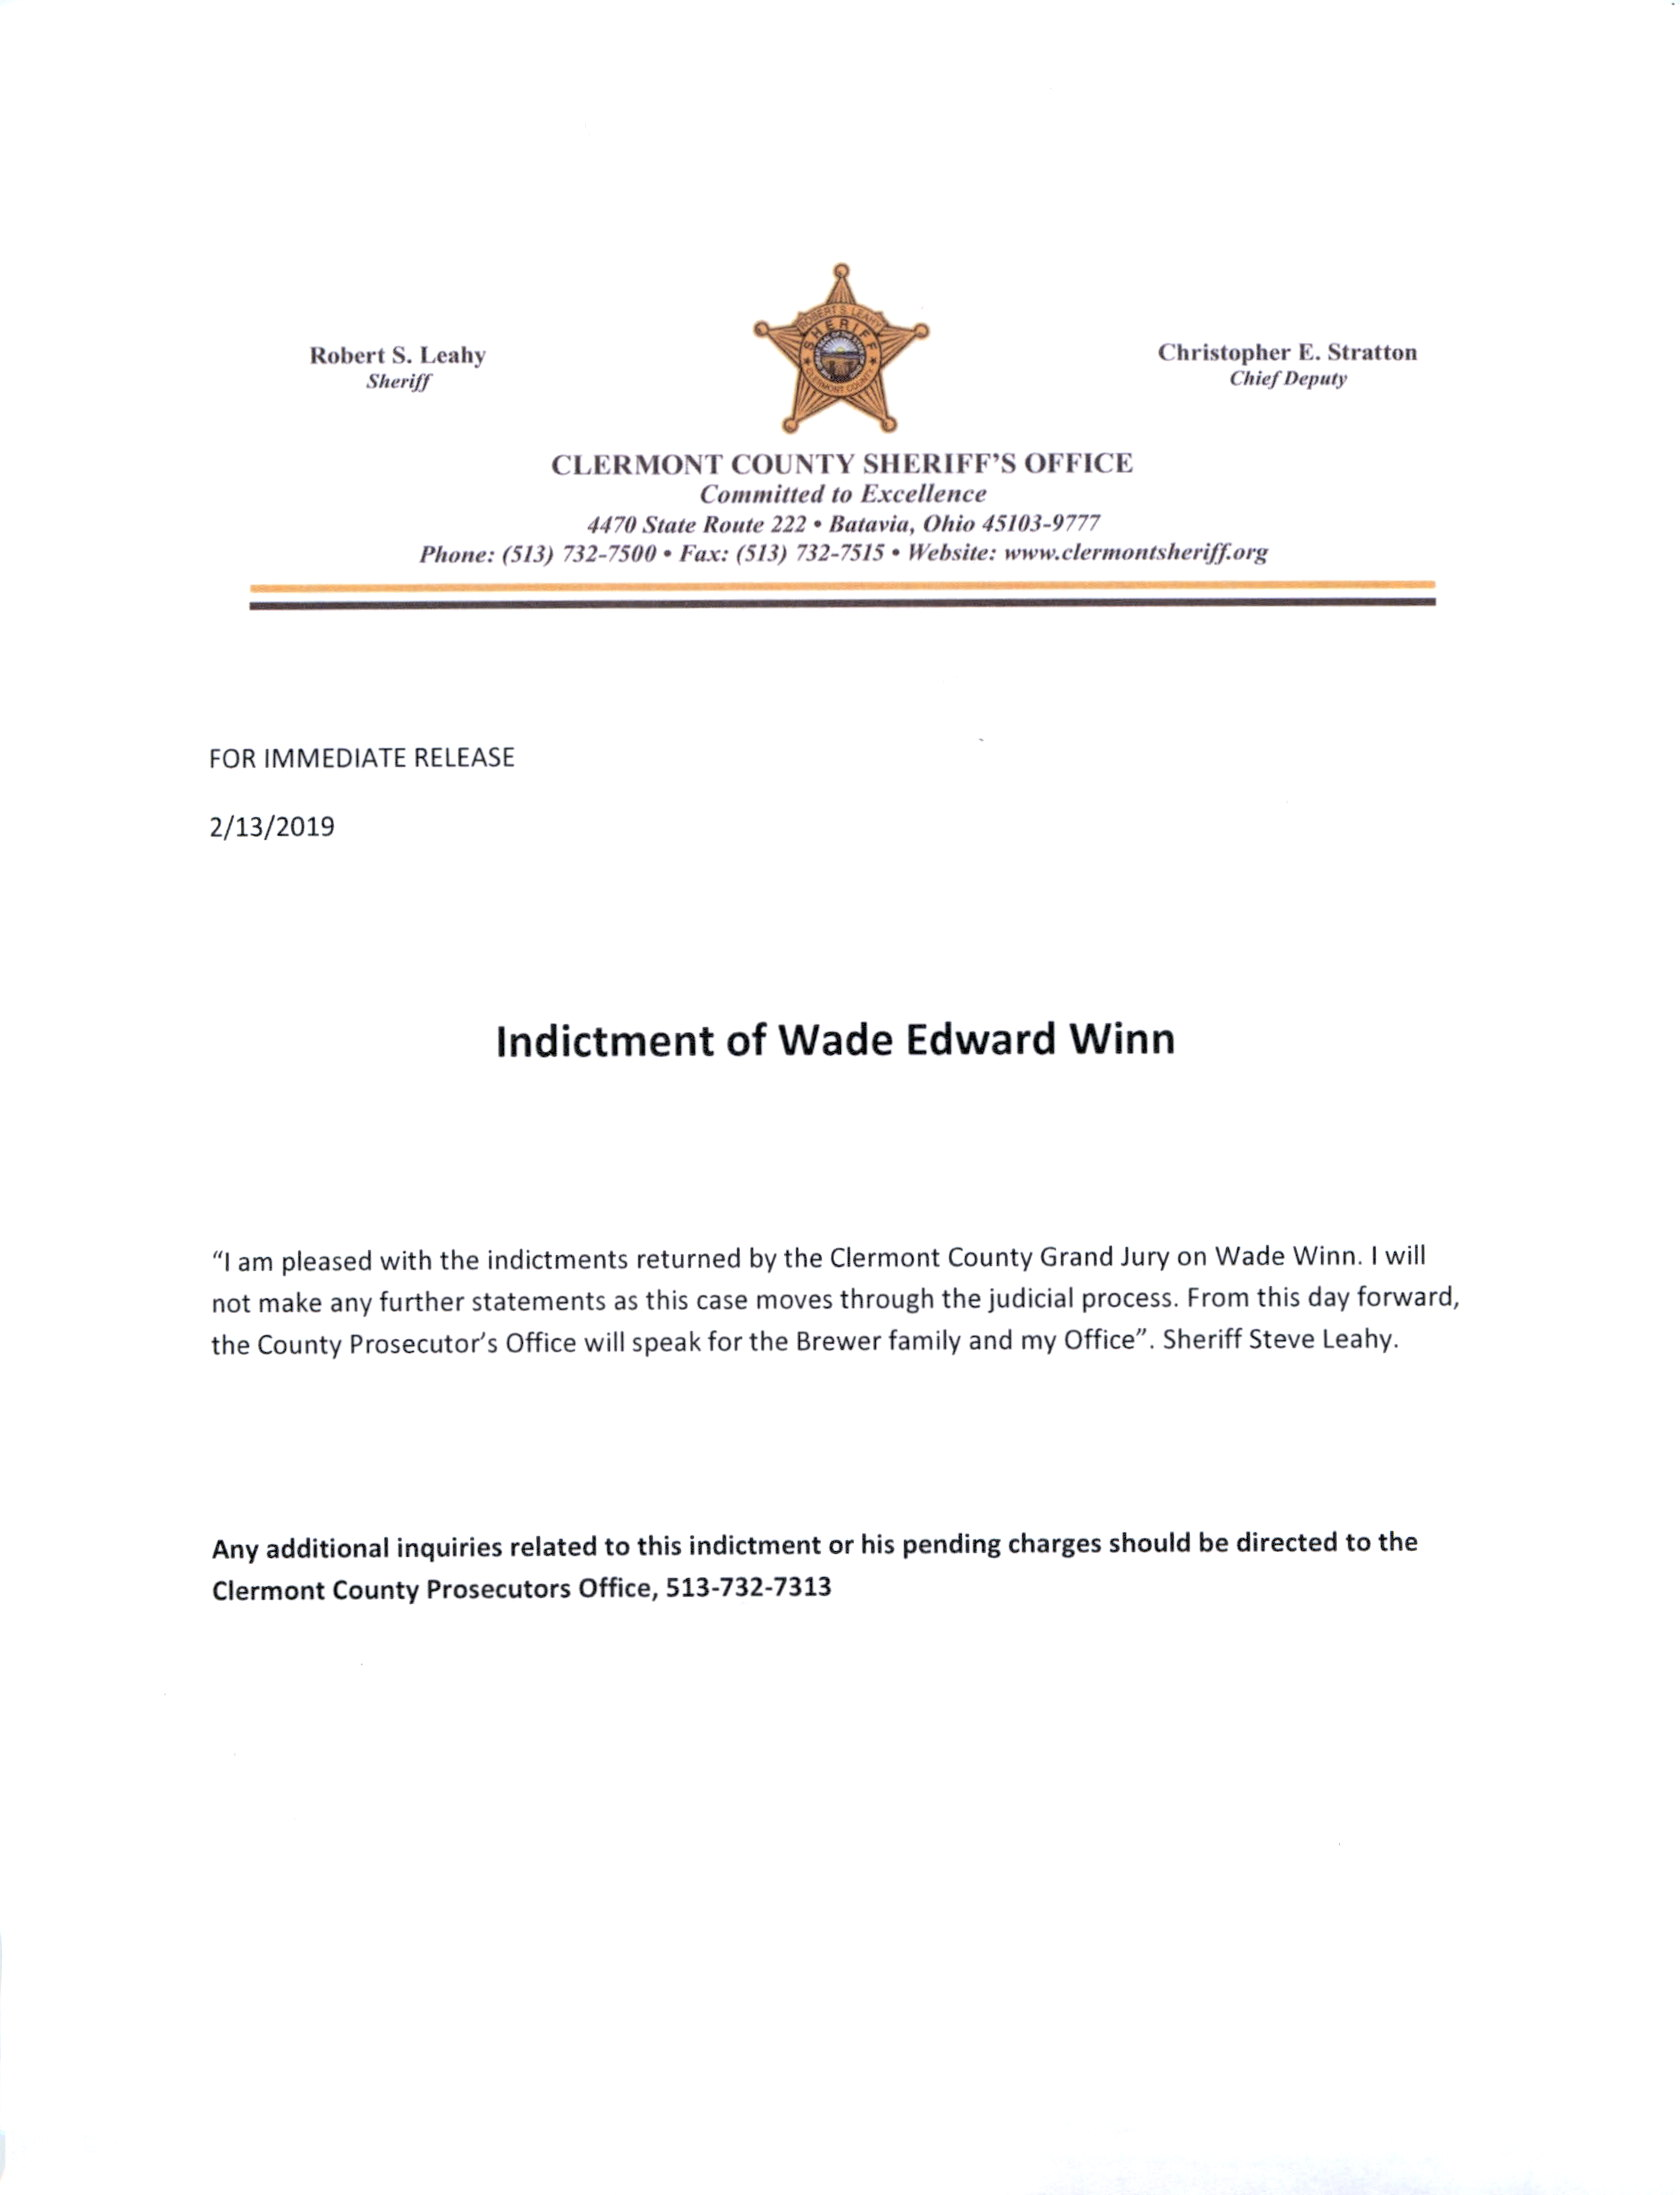 Indictment of Wade Edward Winn | Clermont County Sheriff